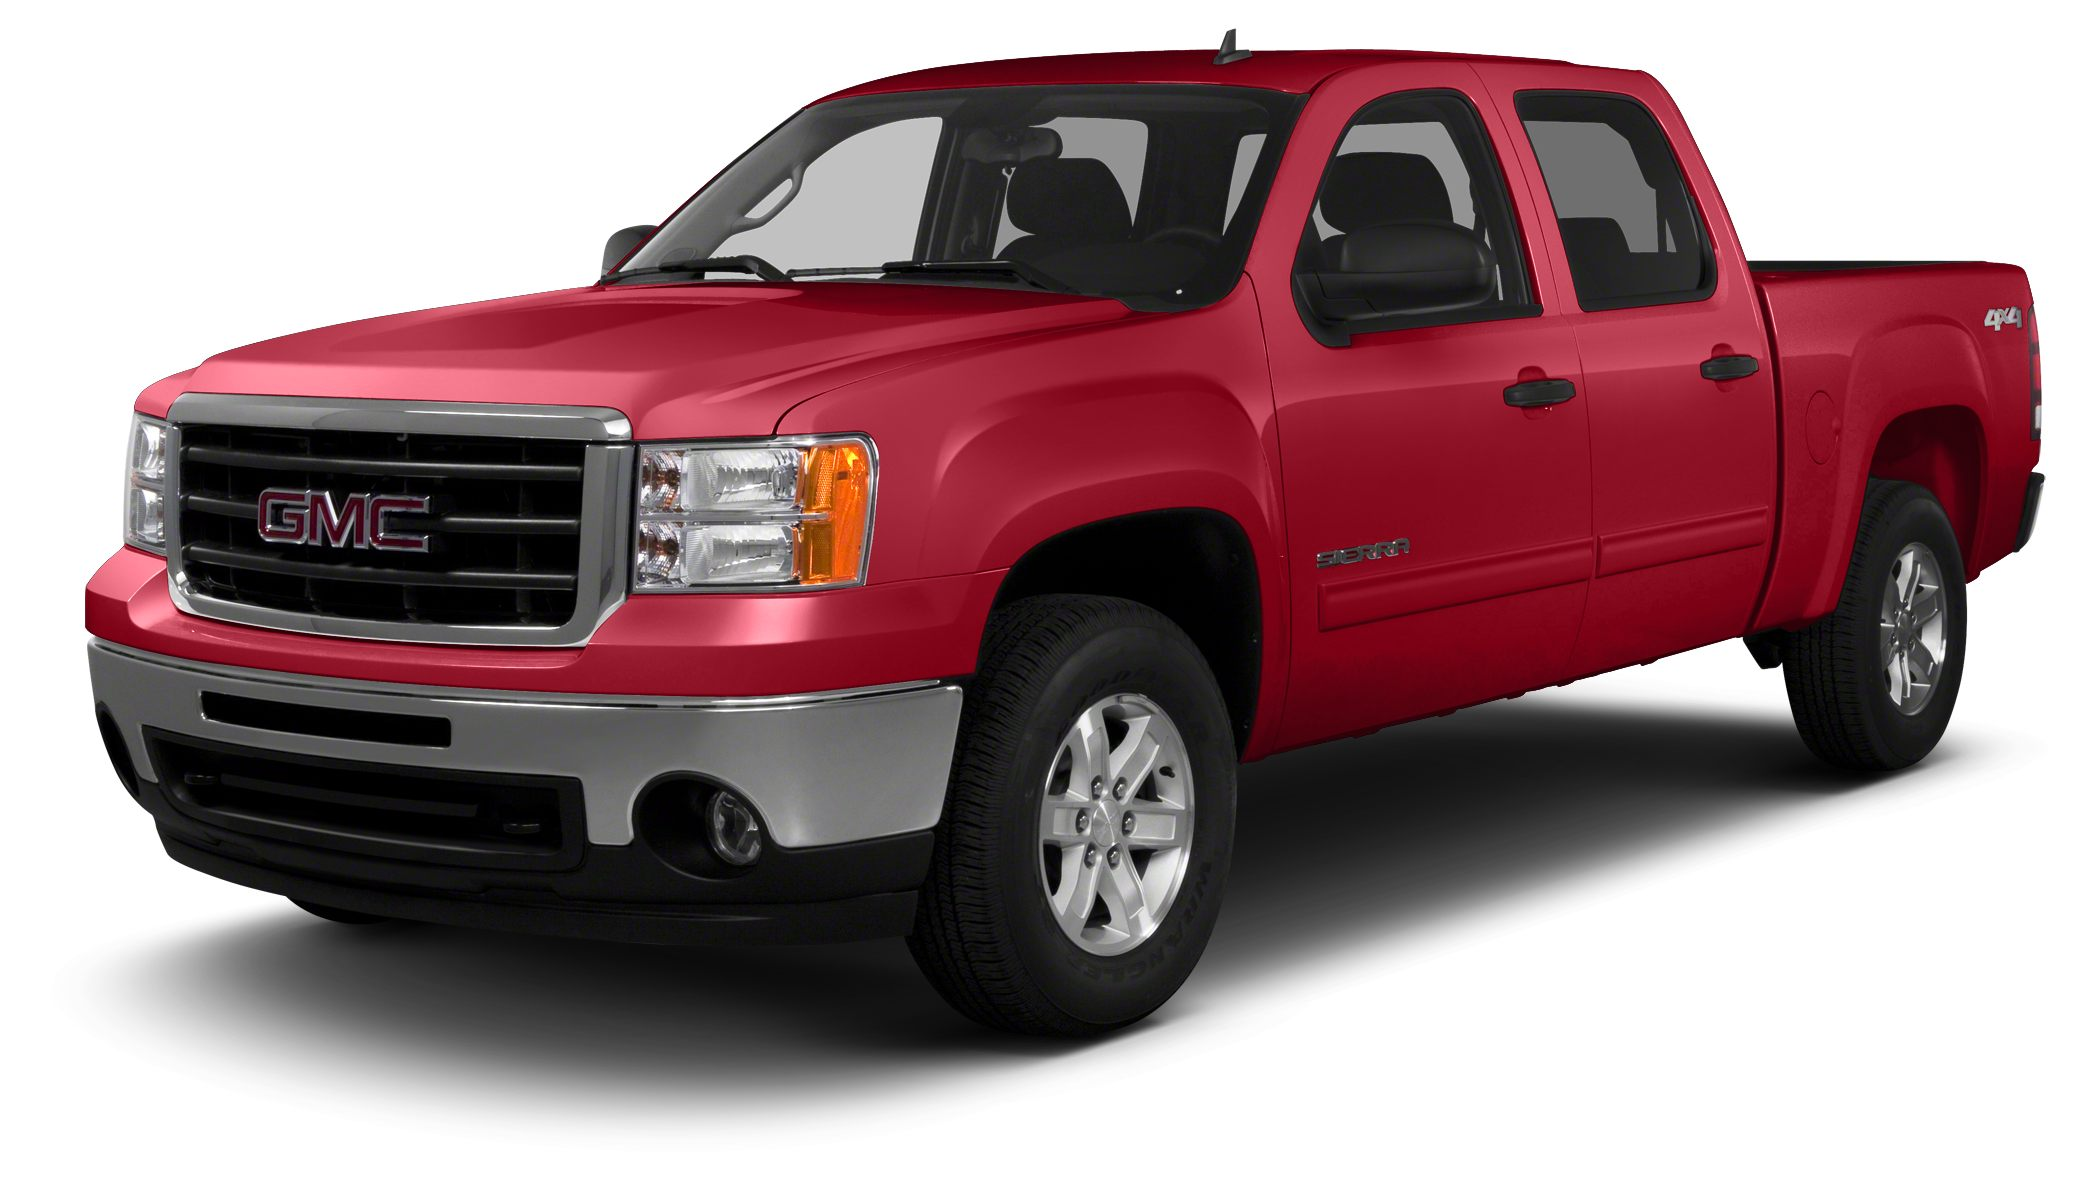 2013 GMC Sierra 1500 SLT CARFAX 1-Owner ONLY 29746 Miles SLT trim Heated Leather Seats Traile